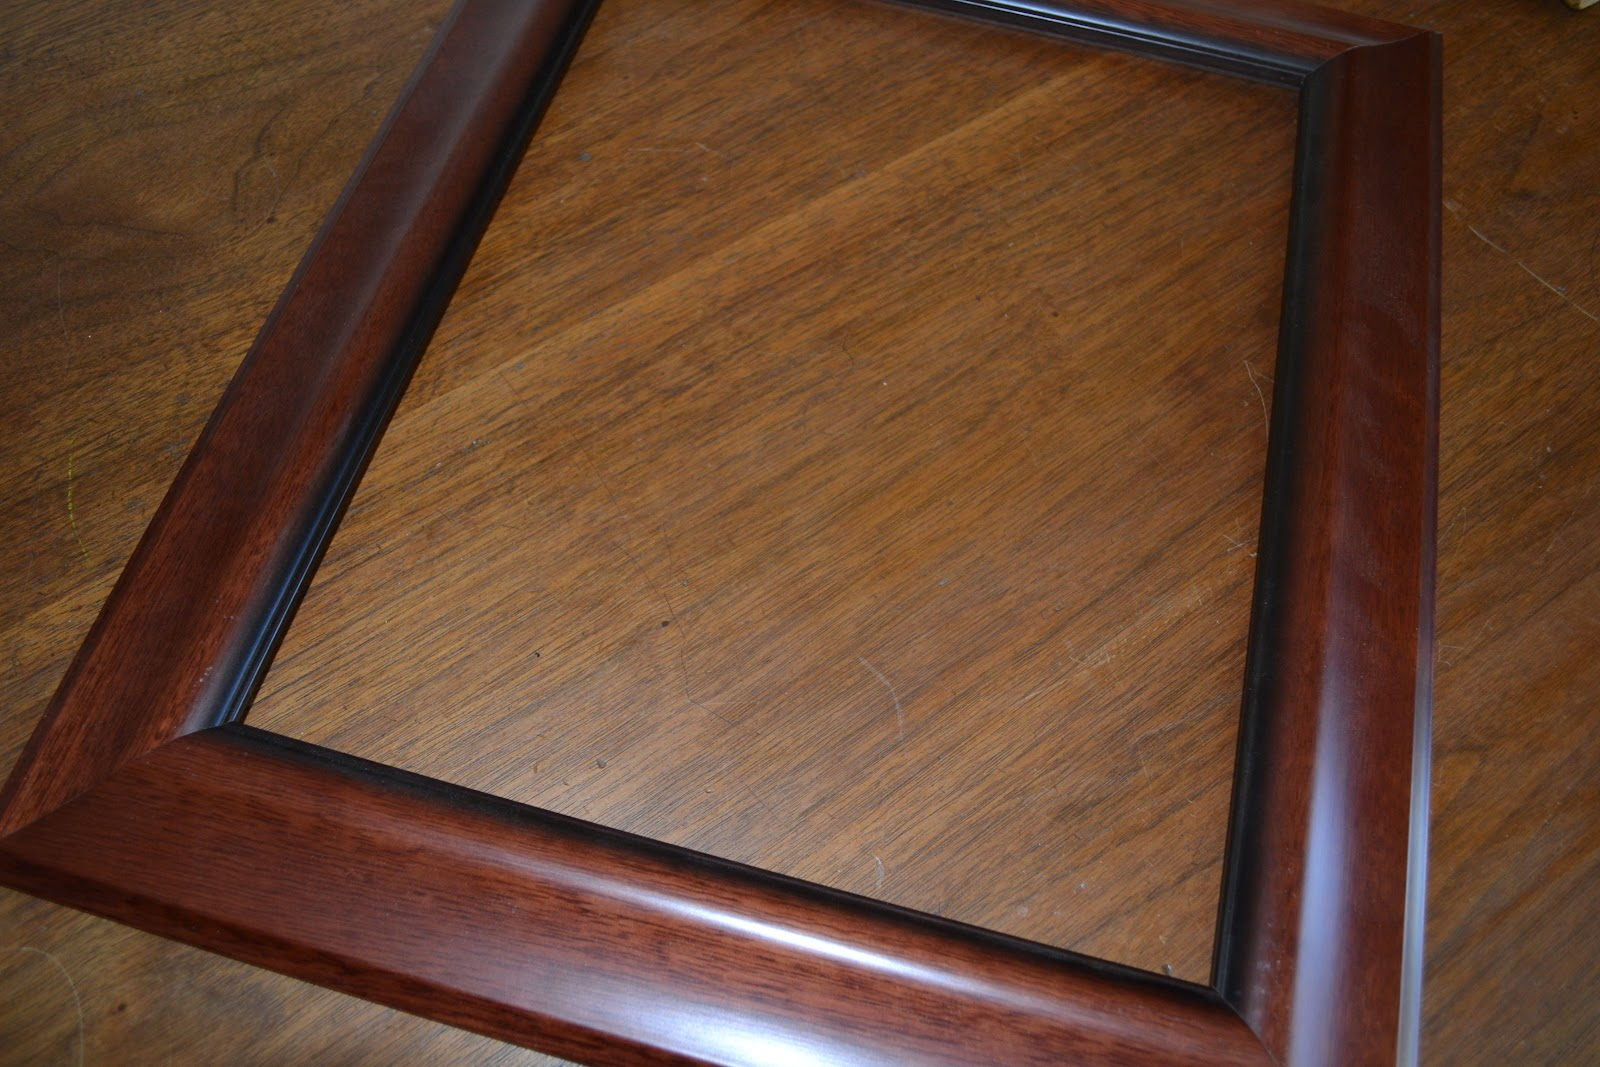 Southern Accents: How To: Frame in an Open Back Frame